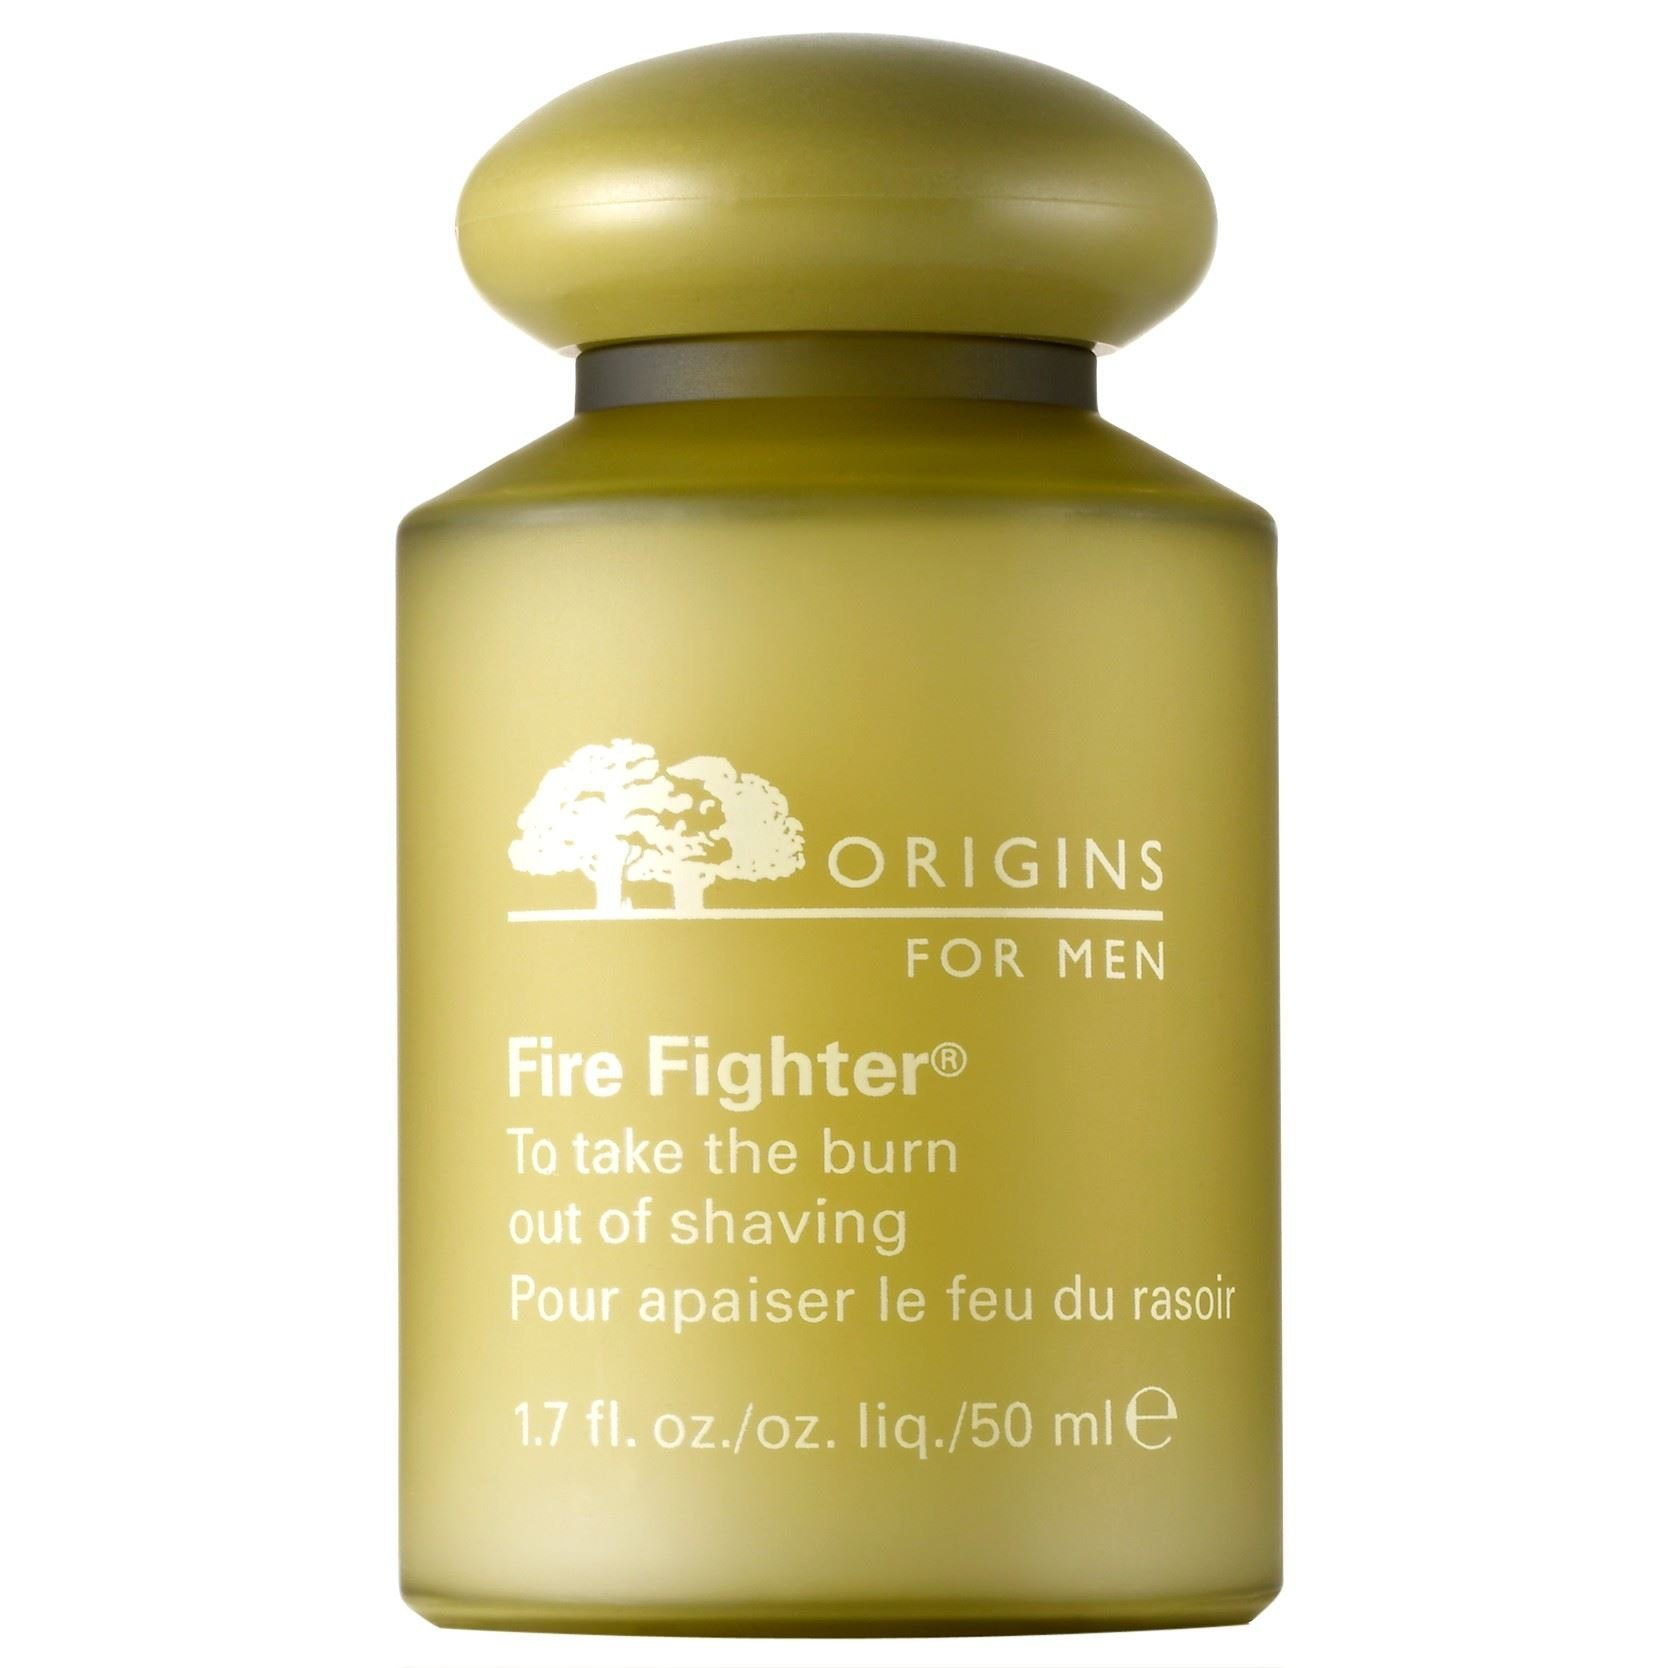 Origins Fire Fighter To Take The Burn Out Of Shaving 50ml - Pack of 2